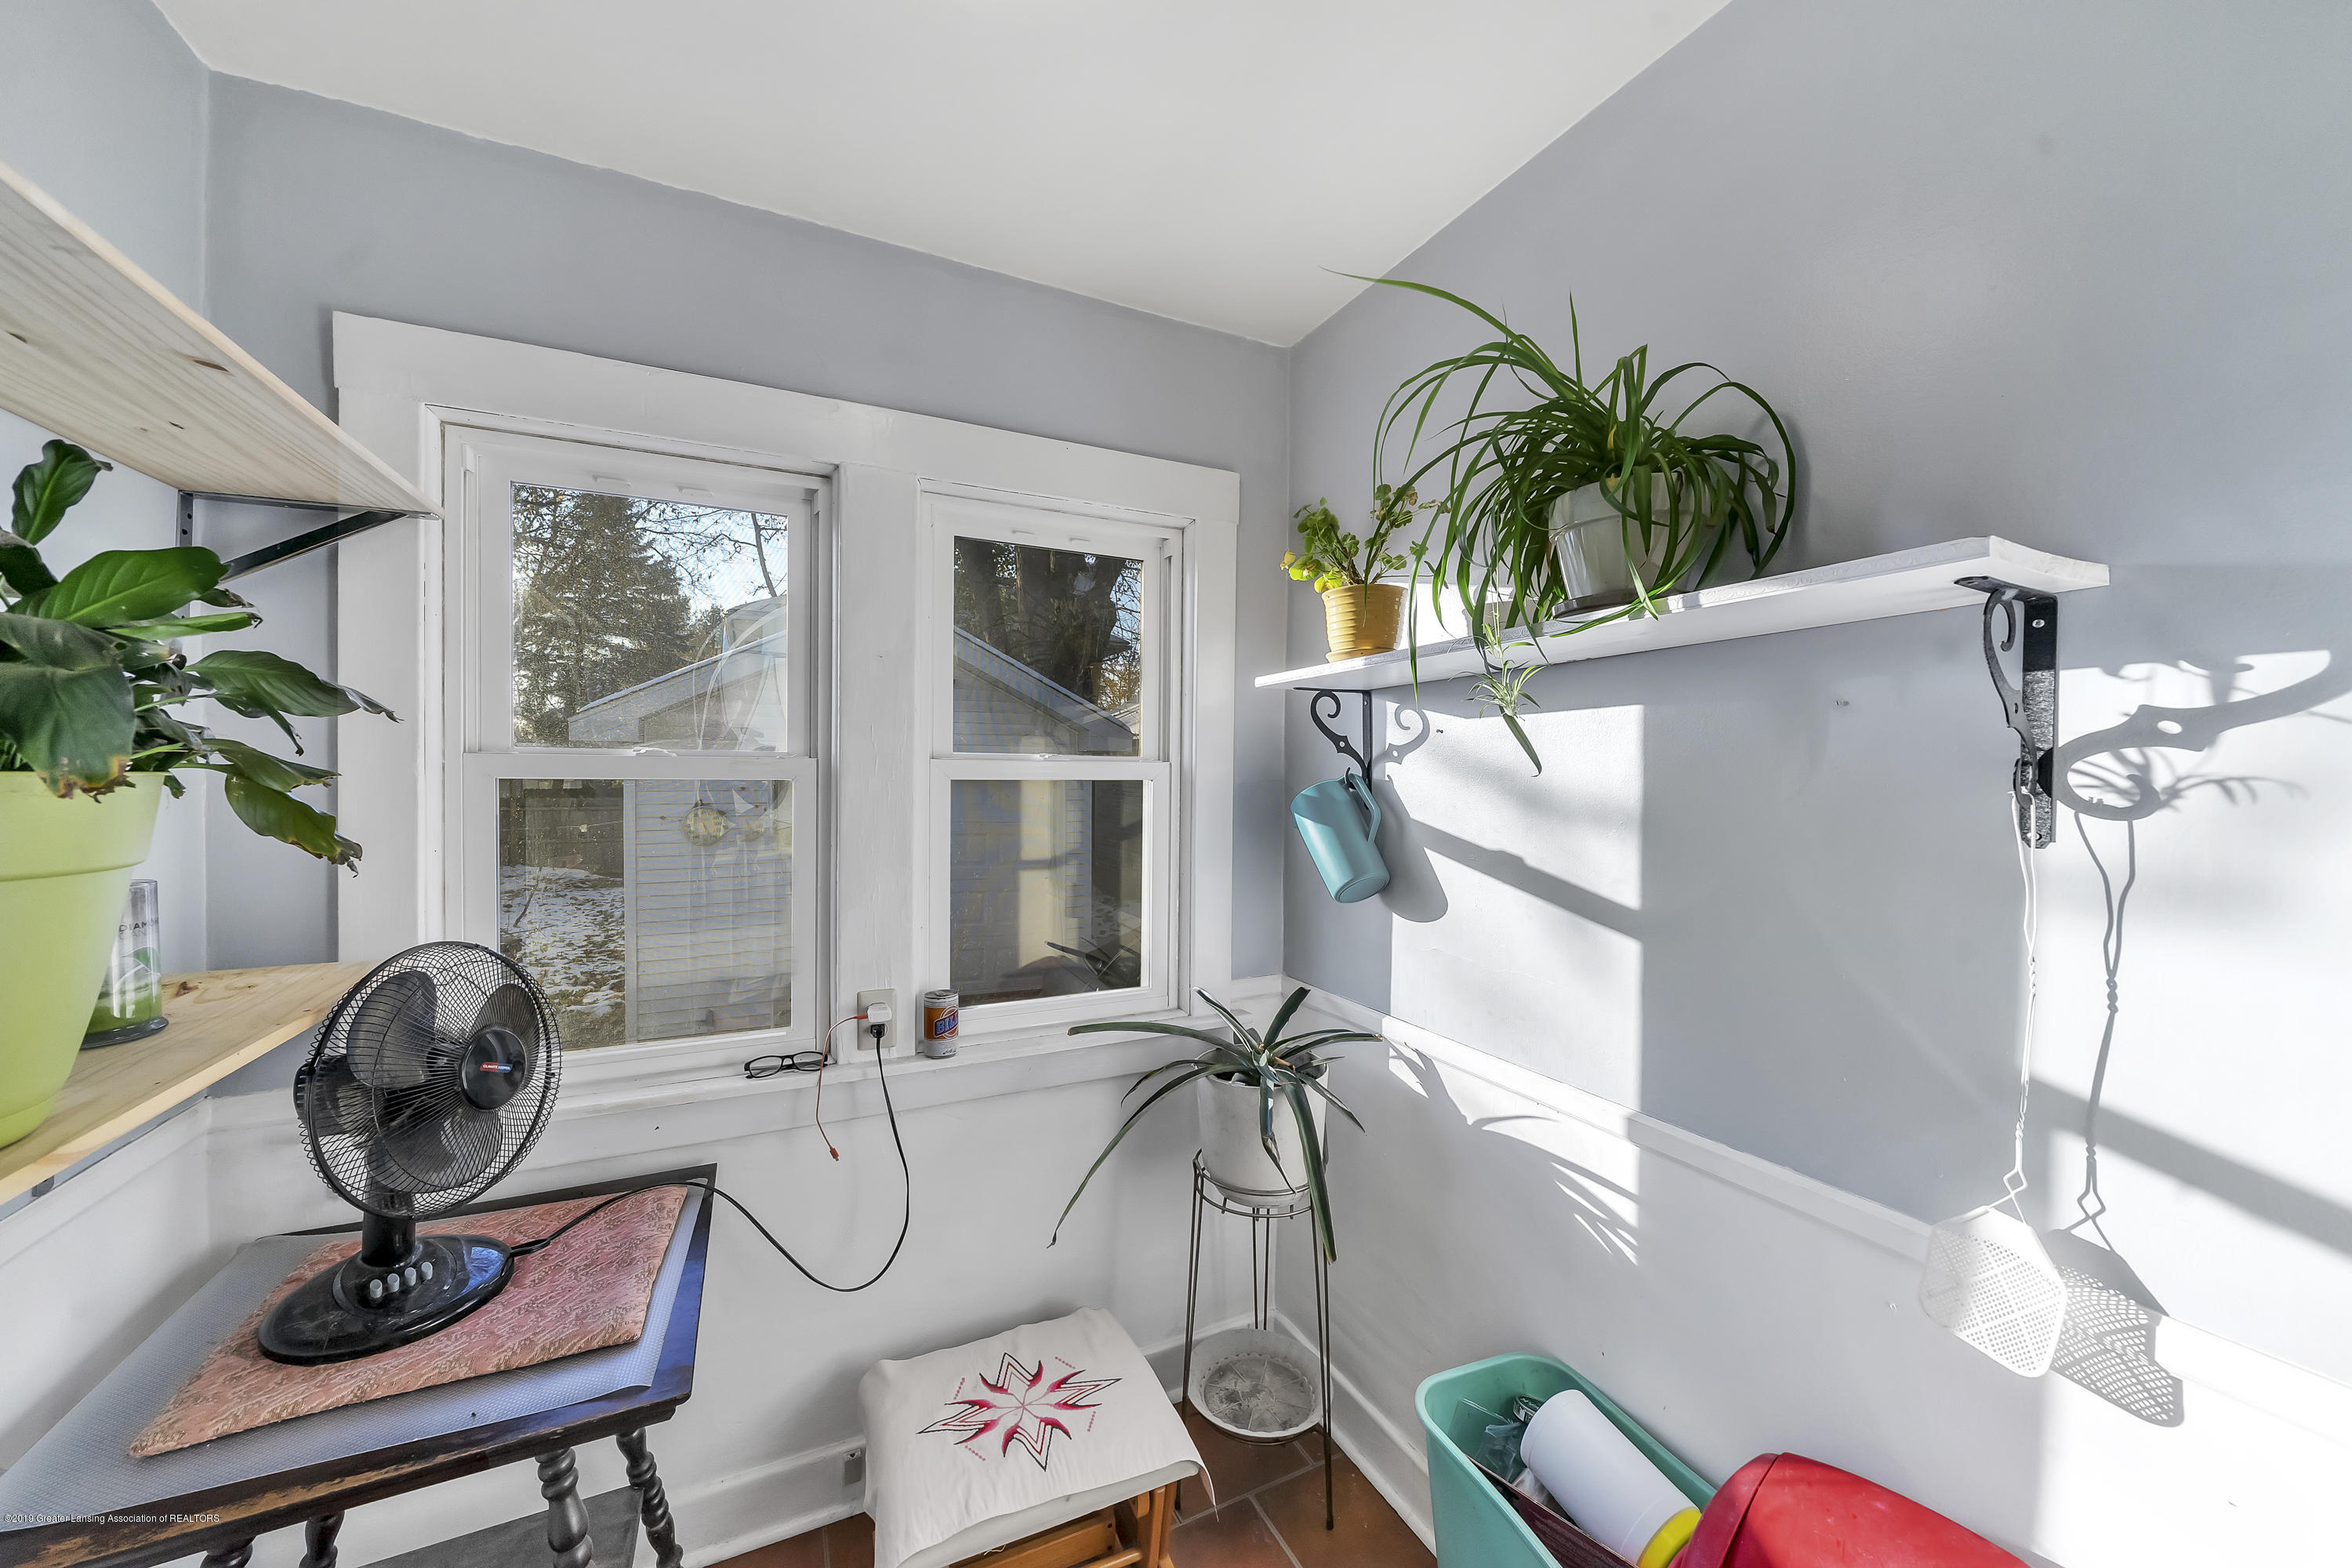 1004 S Holmes St - 1004-S-Holmes-st-WindowStill-Real-Estate - 16